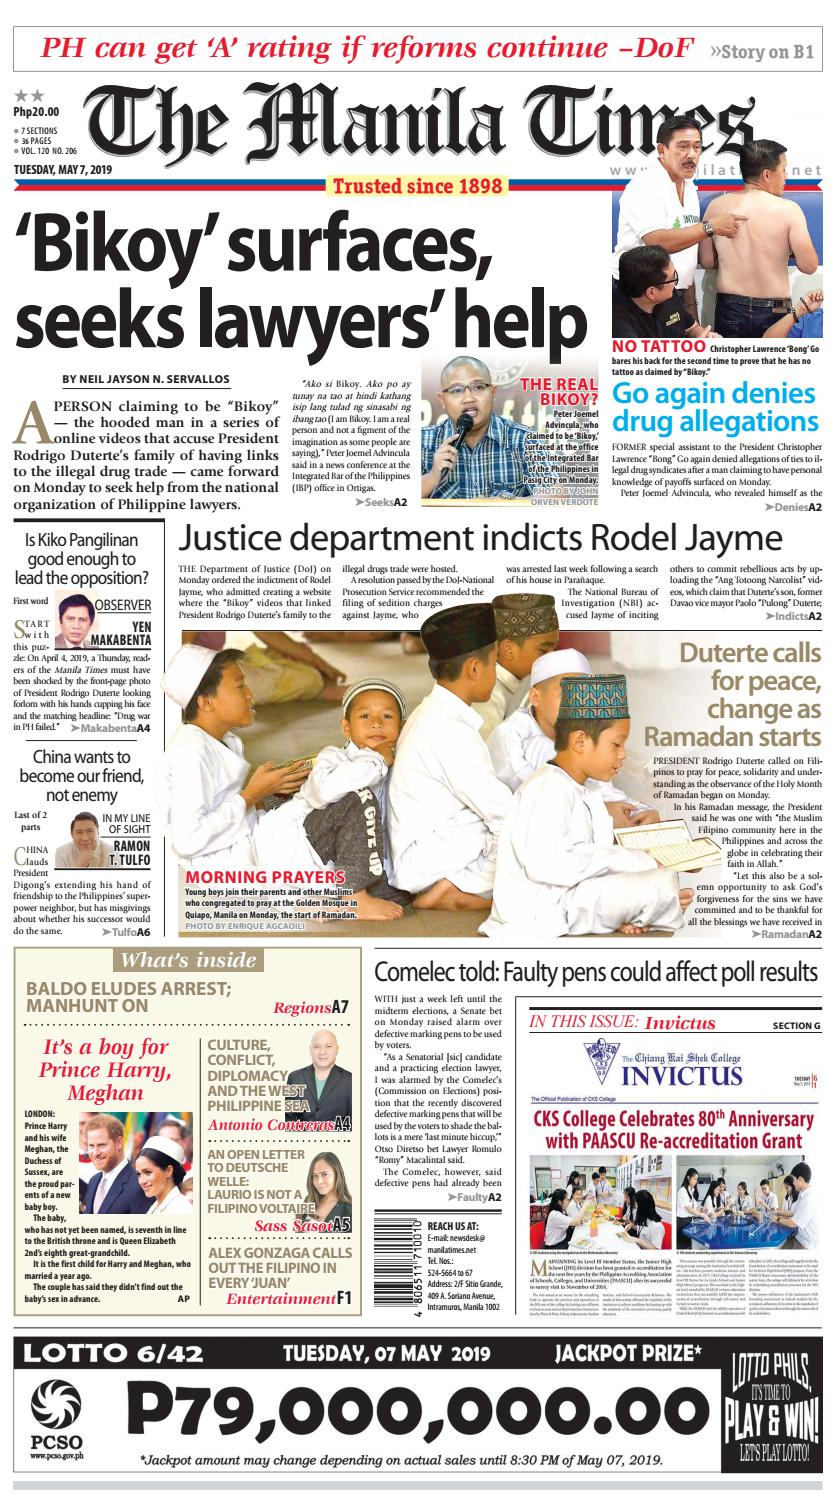 THE MANILA TIMES | MAY 07, 2019 by The Manila Times - issuu